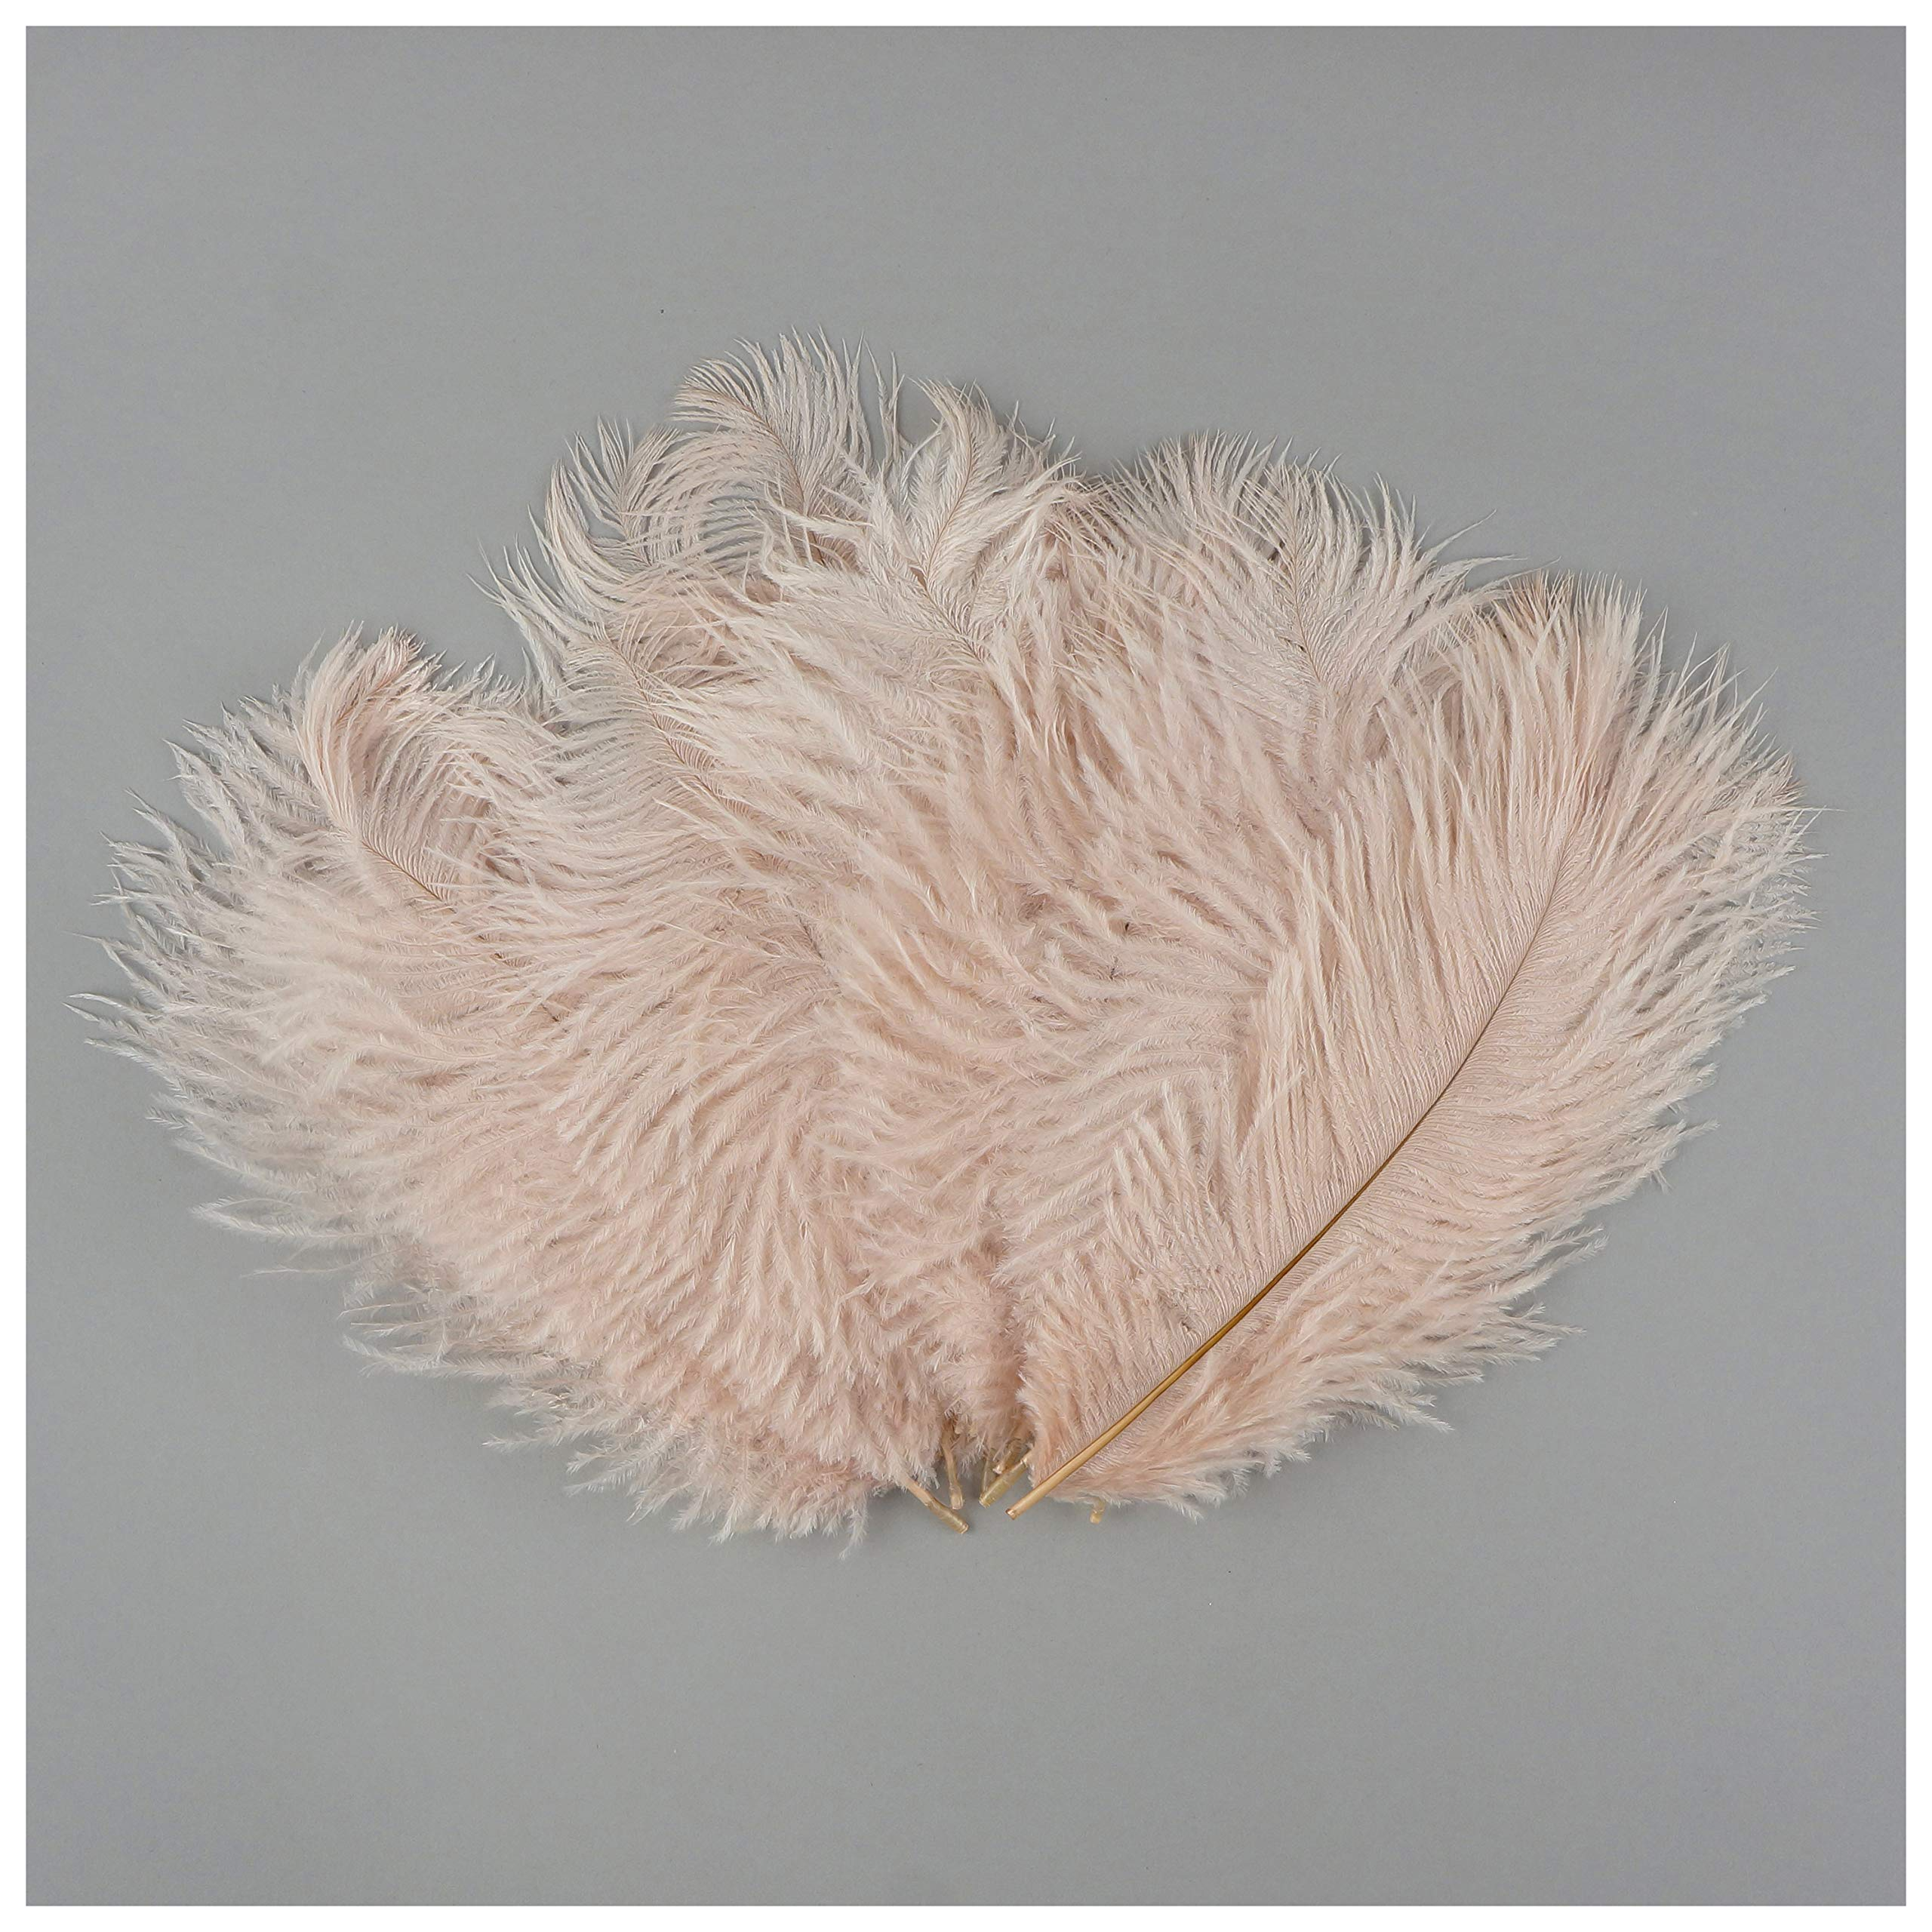 ZUCKER Bulk Feathers | Ostrich Feather Craft Supplies | DIY Wedding Decor | Bulk Ostrich Feathers for Party Decoration, 4-8 inch, Champagne, 1/4 lb (Approx 200 Pieces)